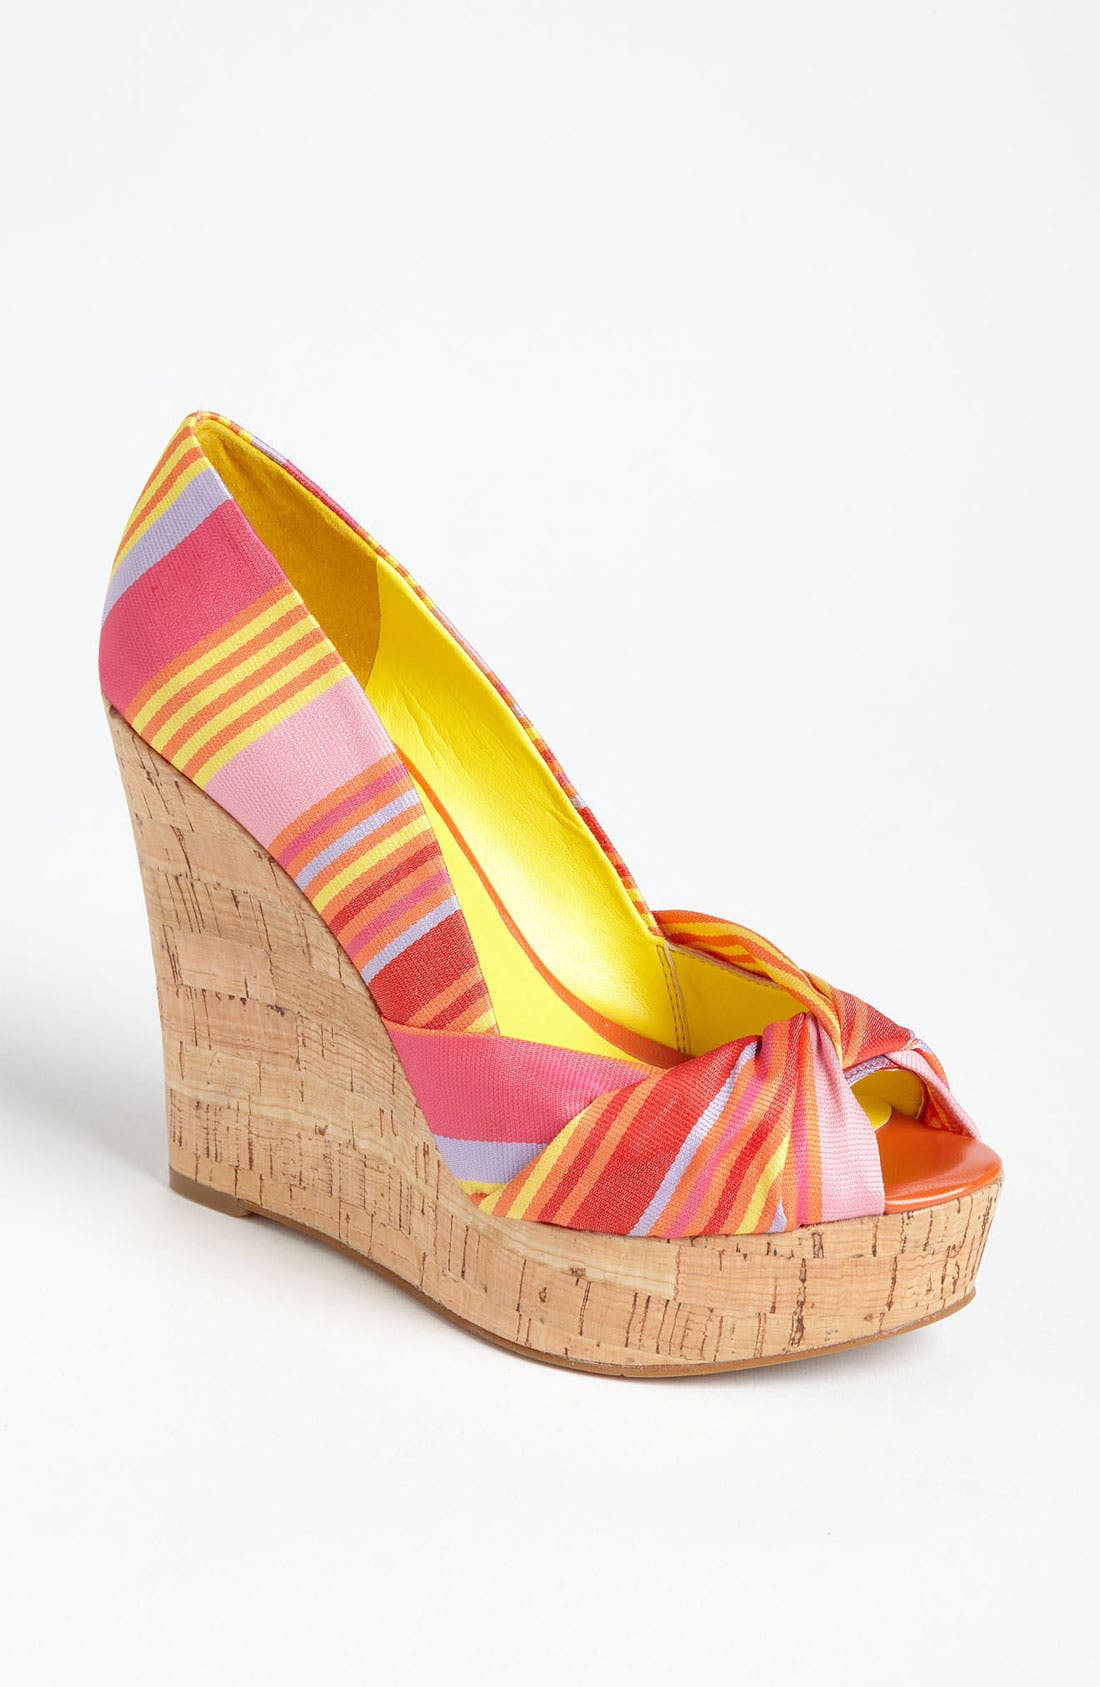 Alternate Image 1 Selected - Nine West 'Chillpill' Sandal